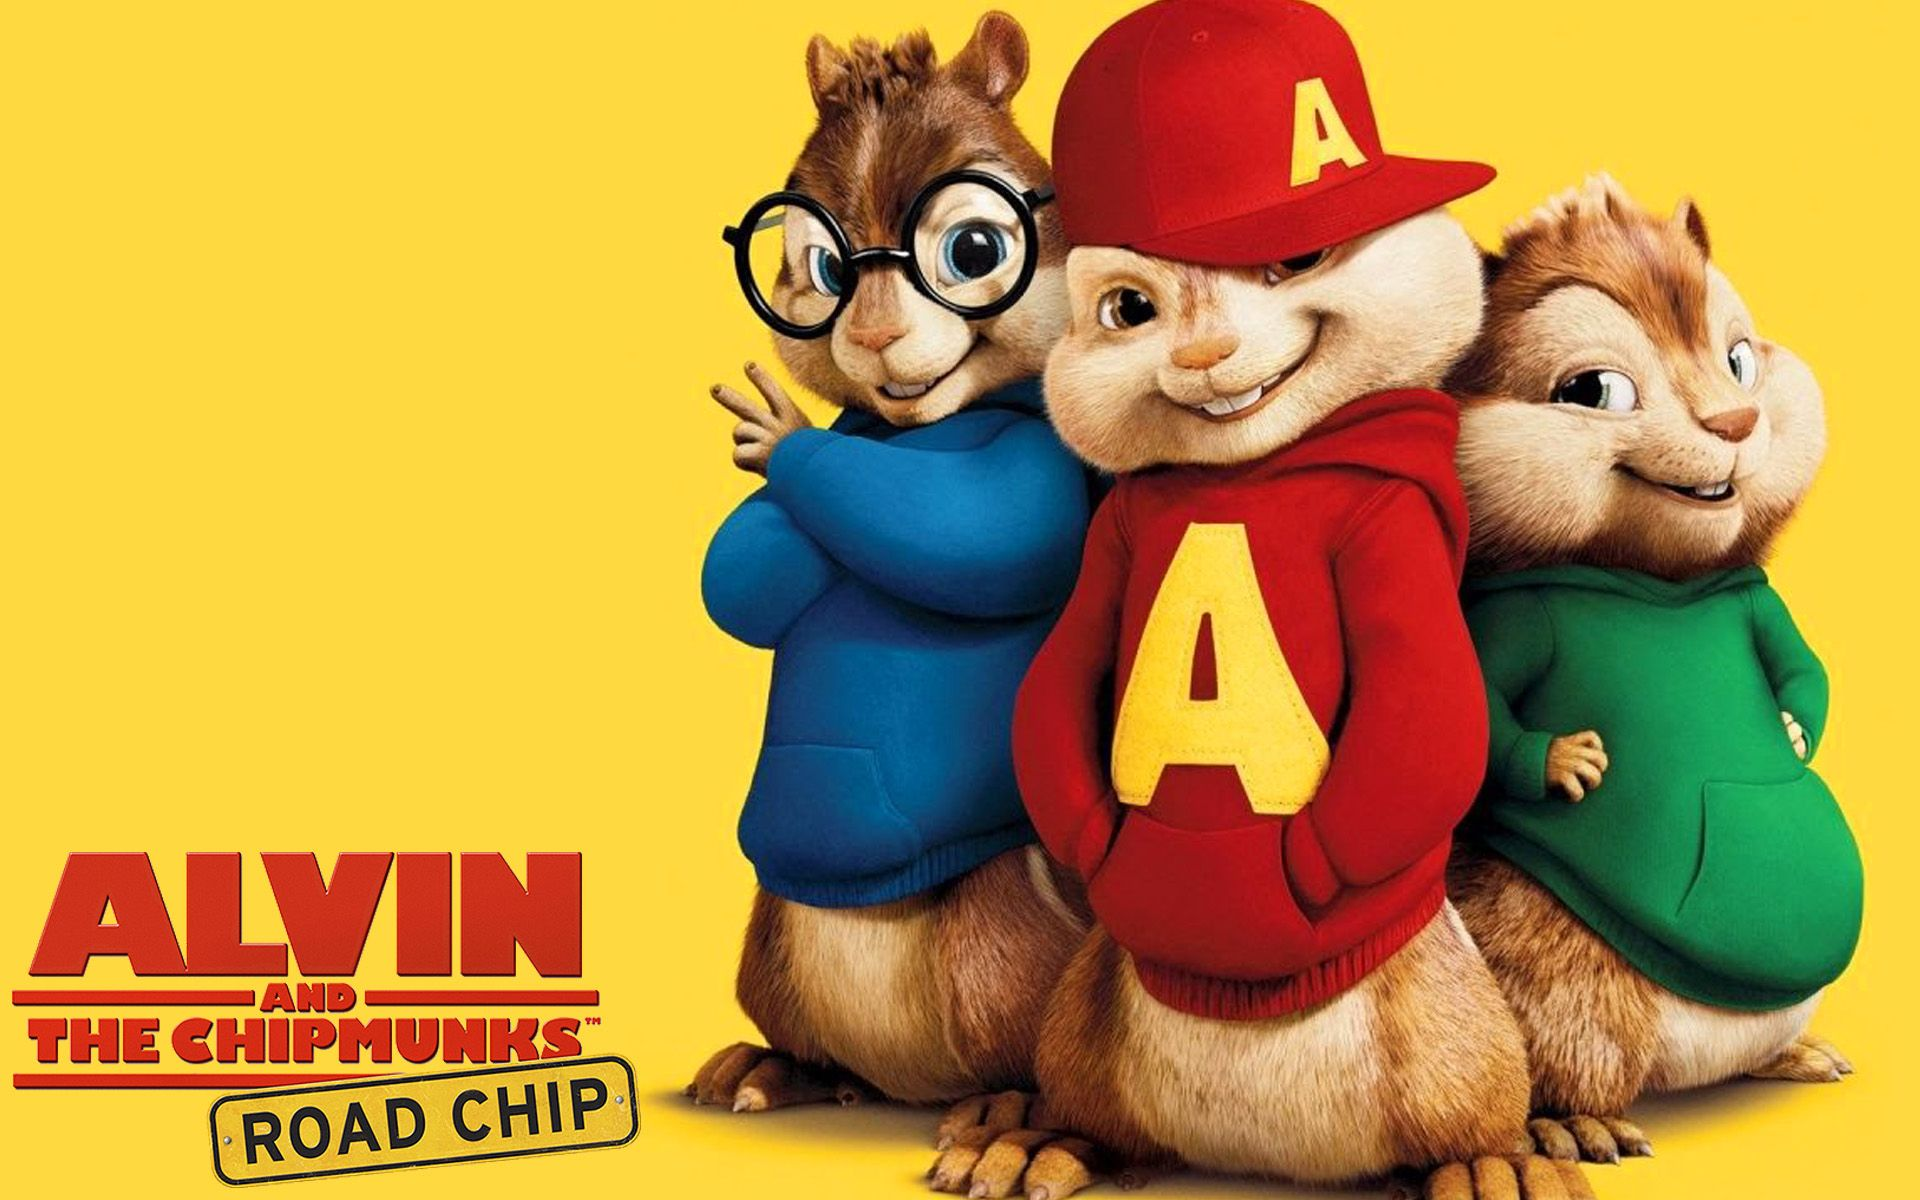 Alvin and the Chipmunks The Road Chip Movie Wallpaper